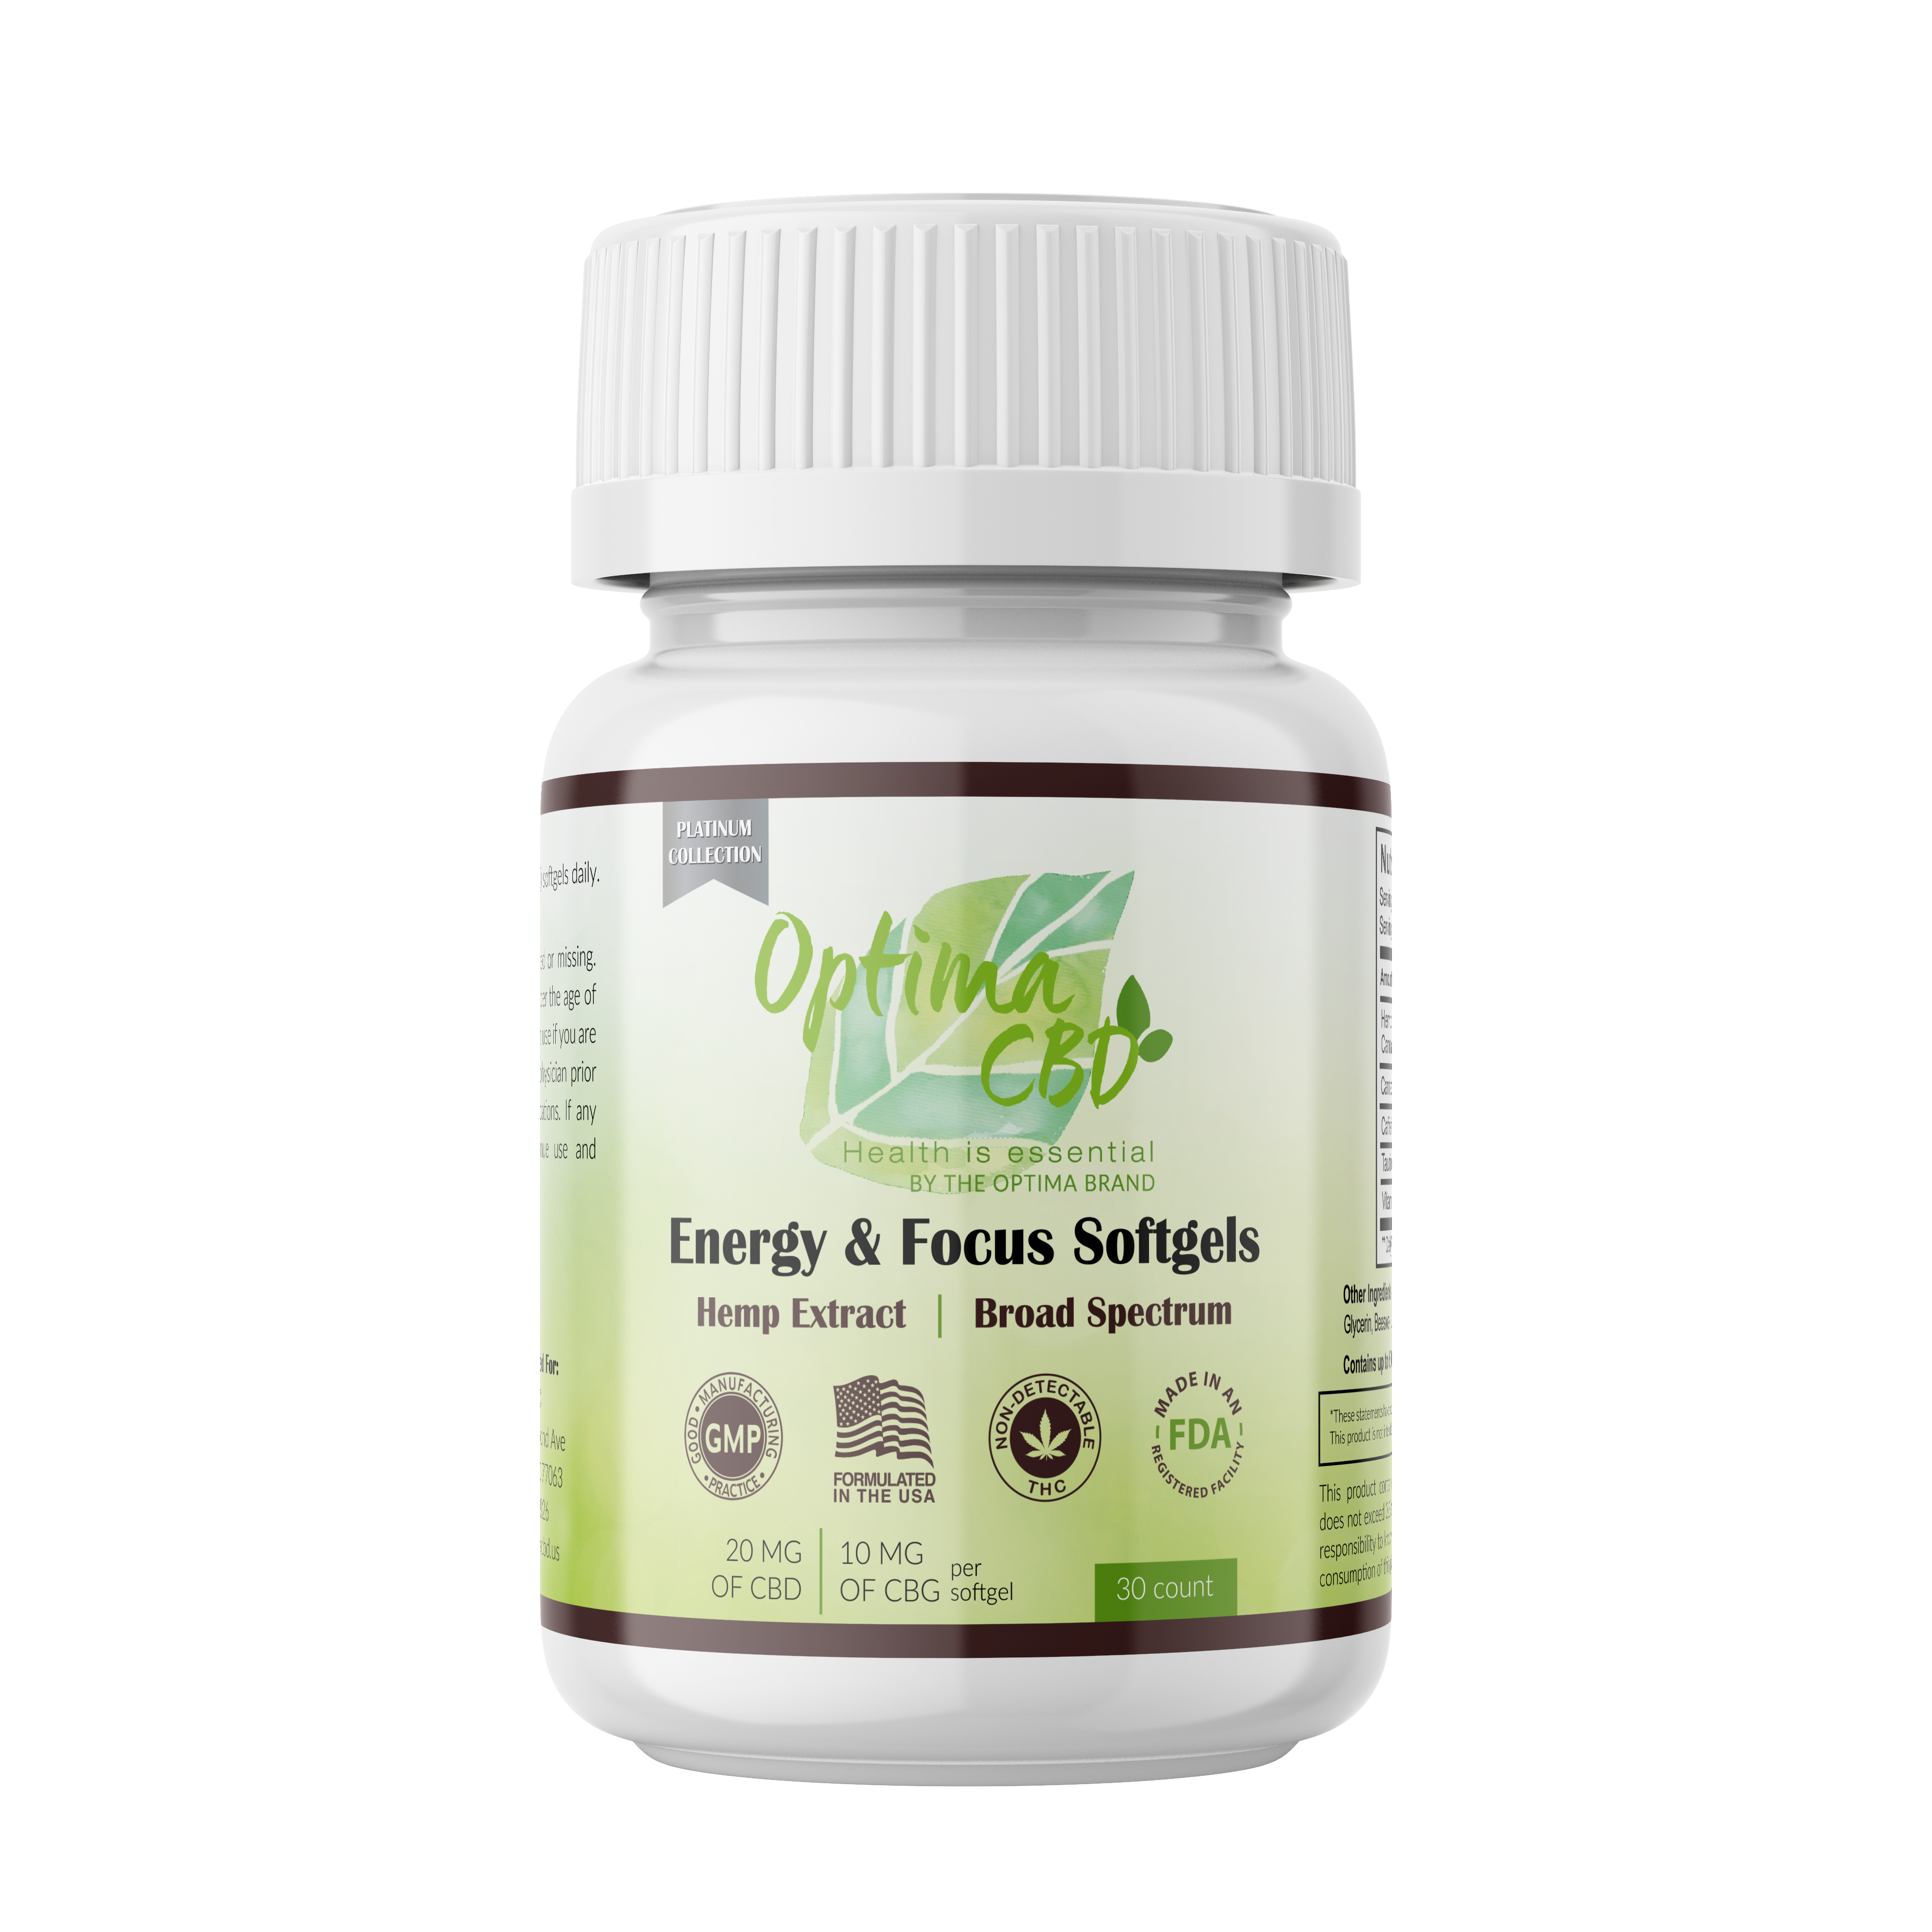 Energy and Focus Soft-gels